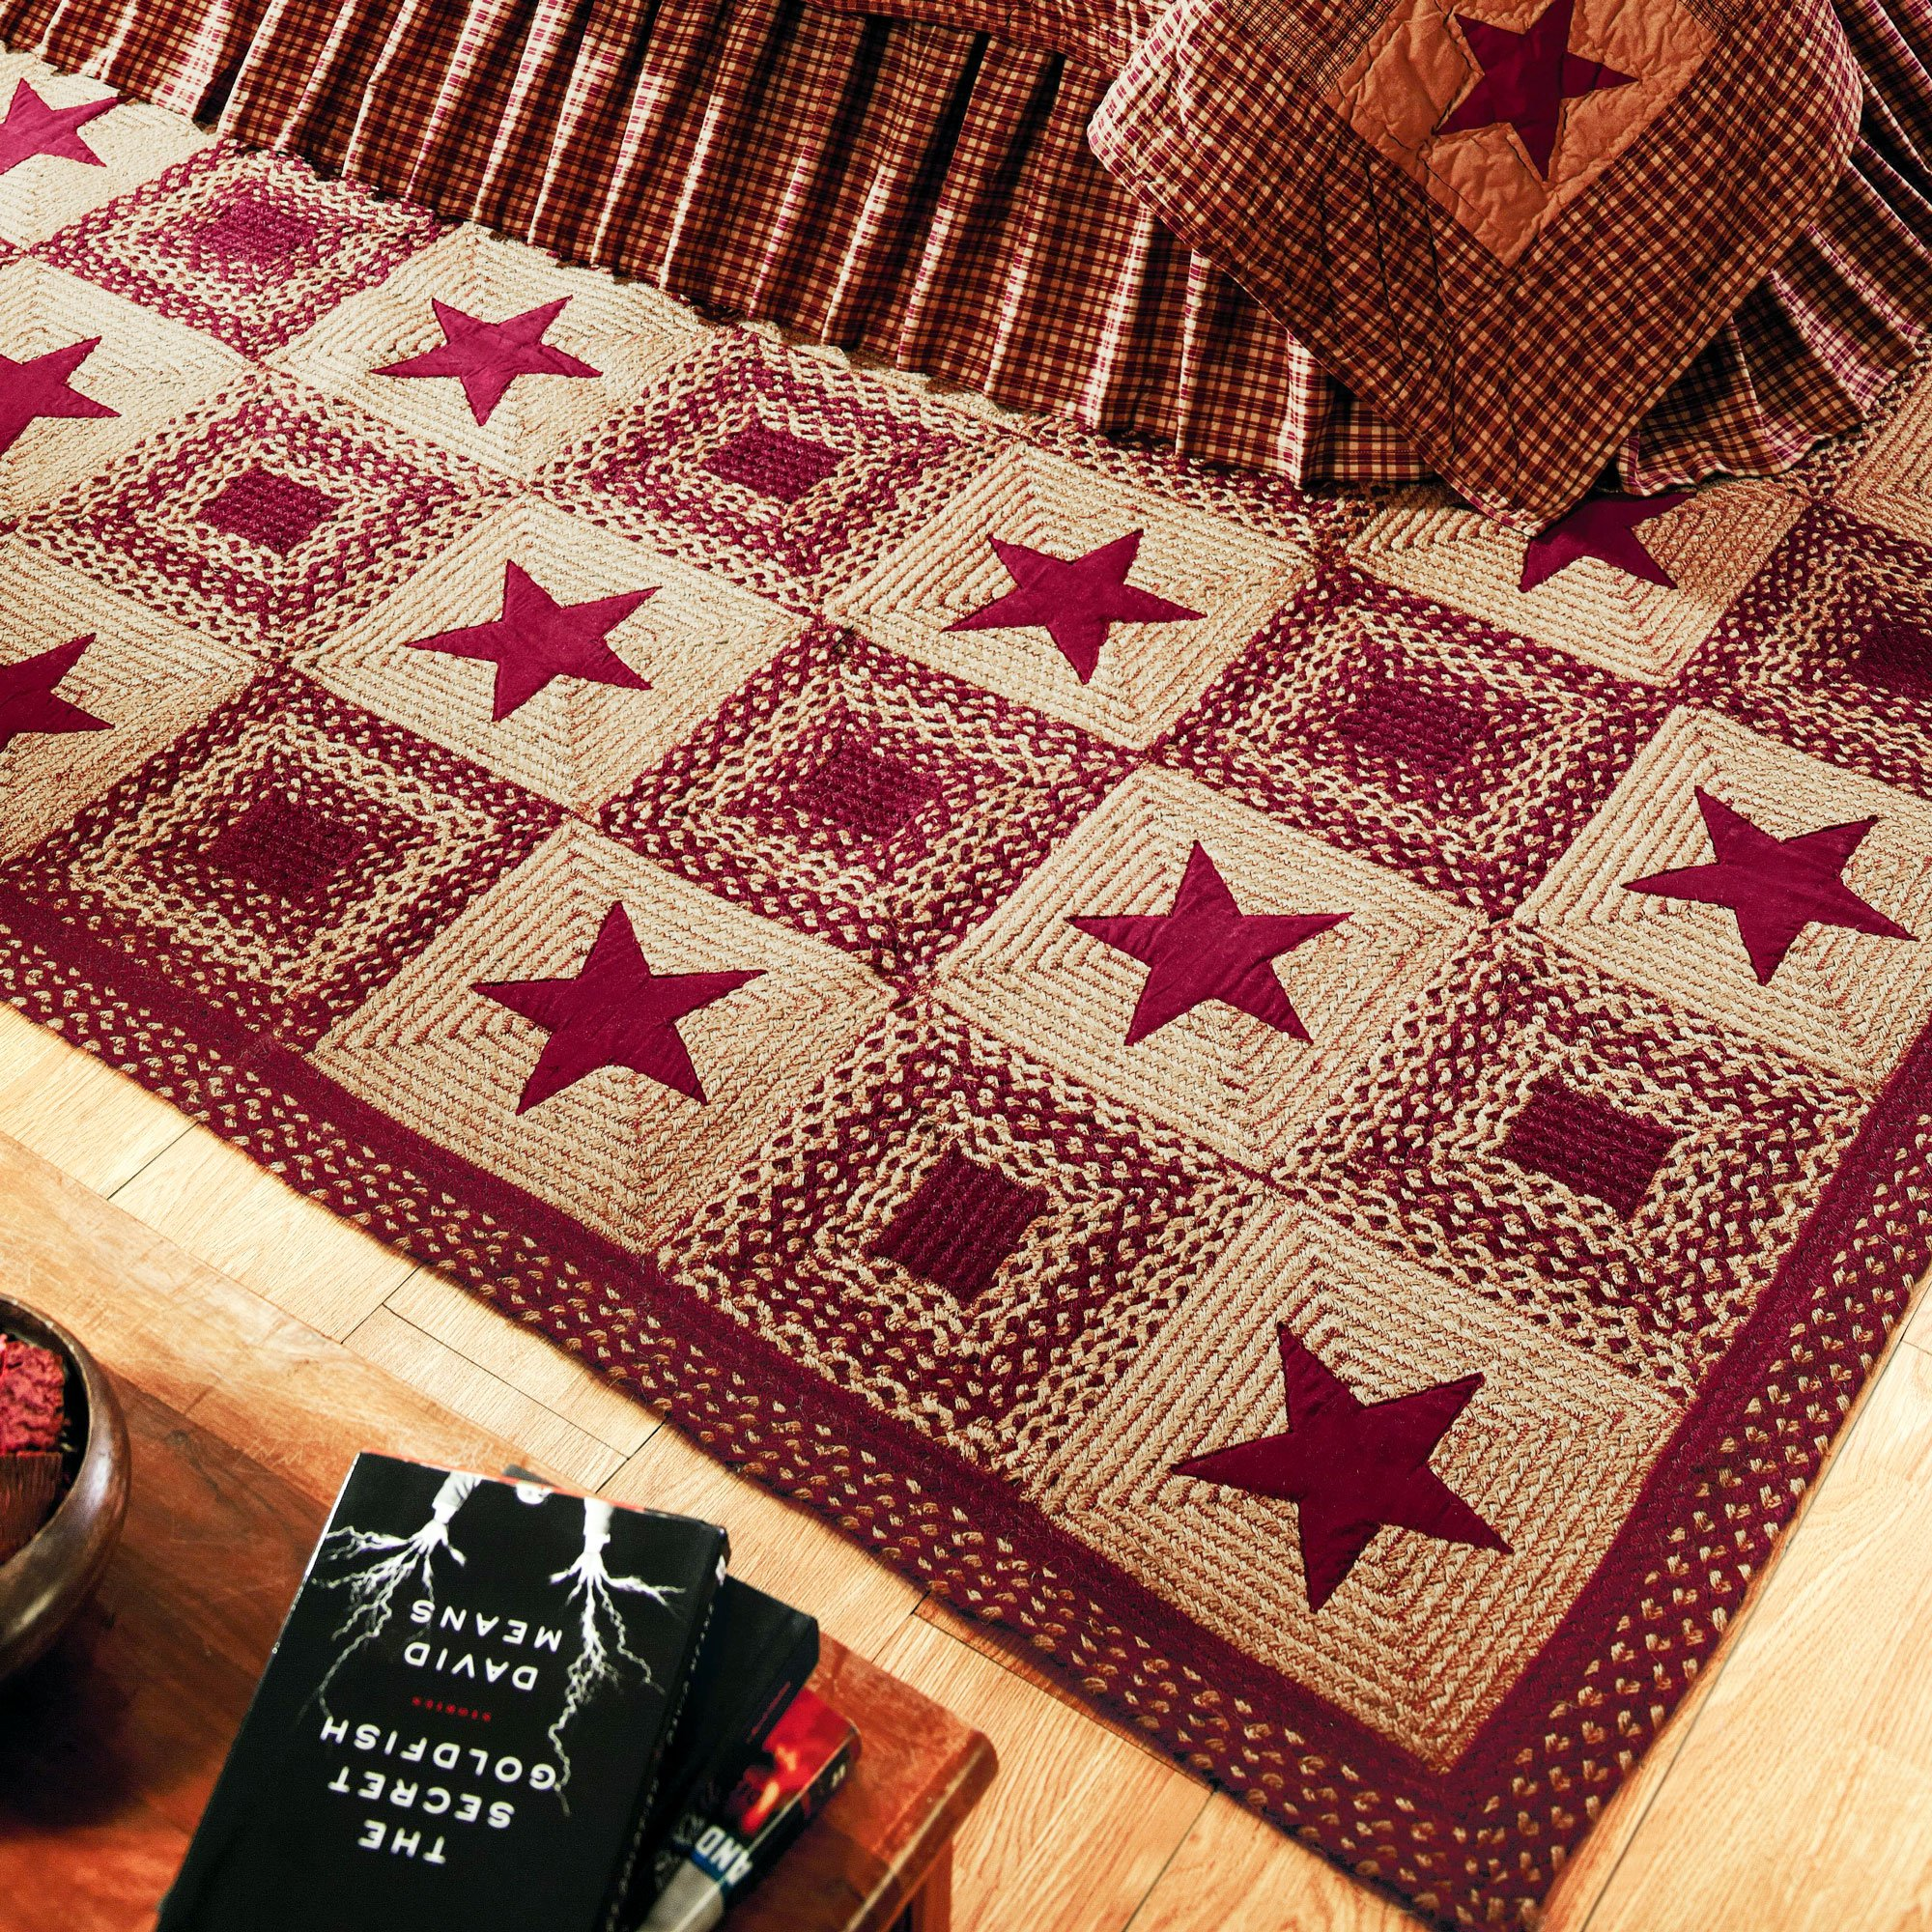 IHF Home Decor Rectangle Jute Braided Rugs 4 x 6 Feet Country Star Wine Design